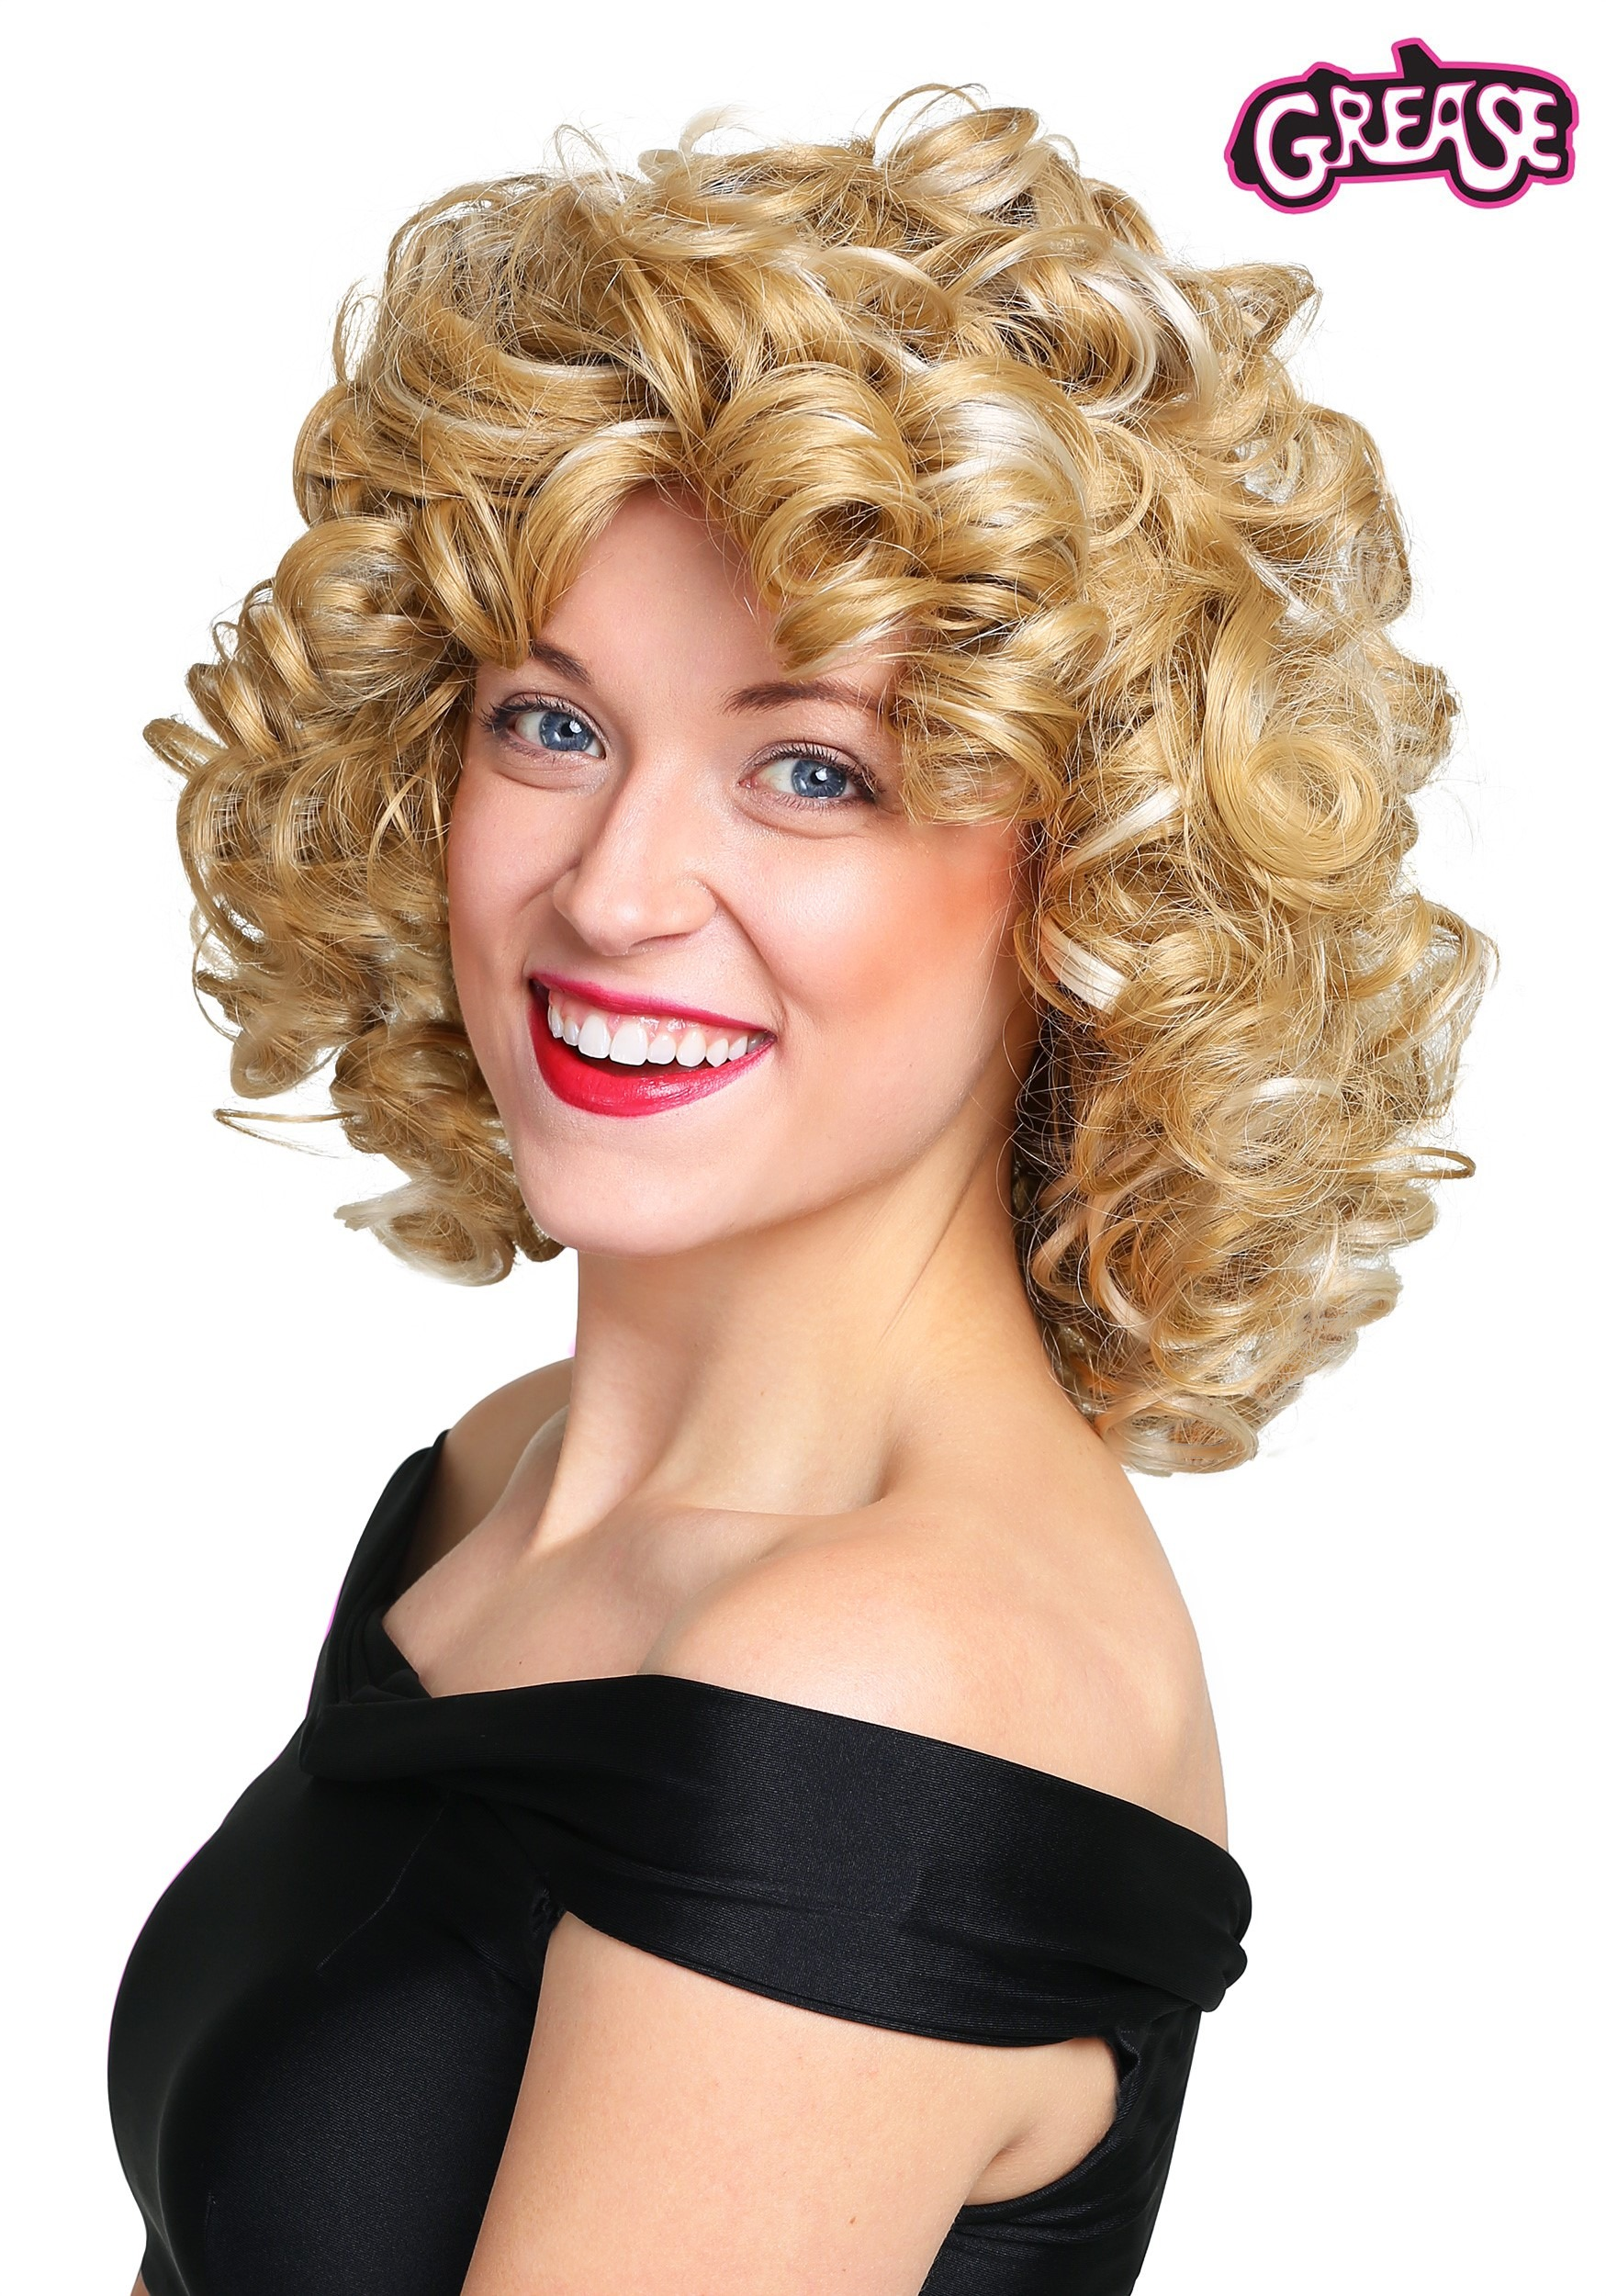 womens-grease-bad-sandy-wig.jpg f807c73d0c